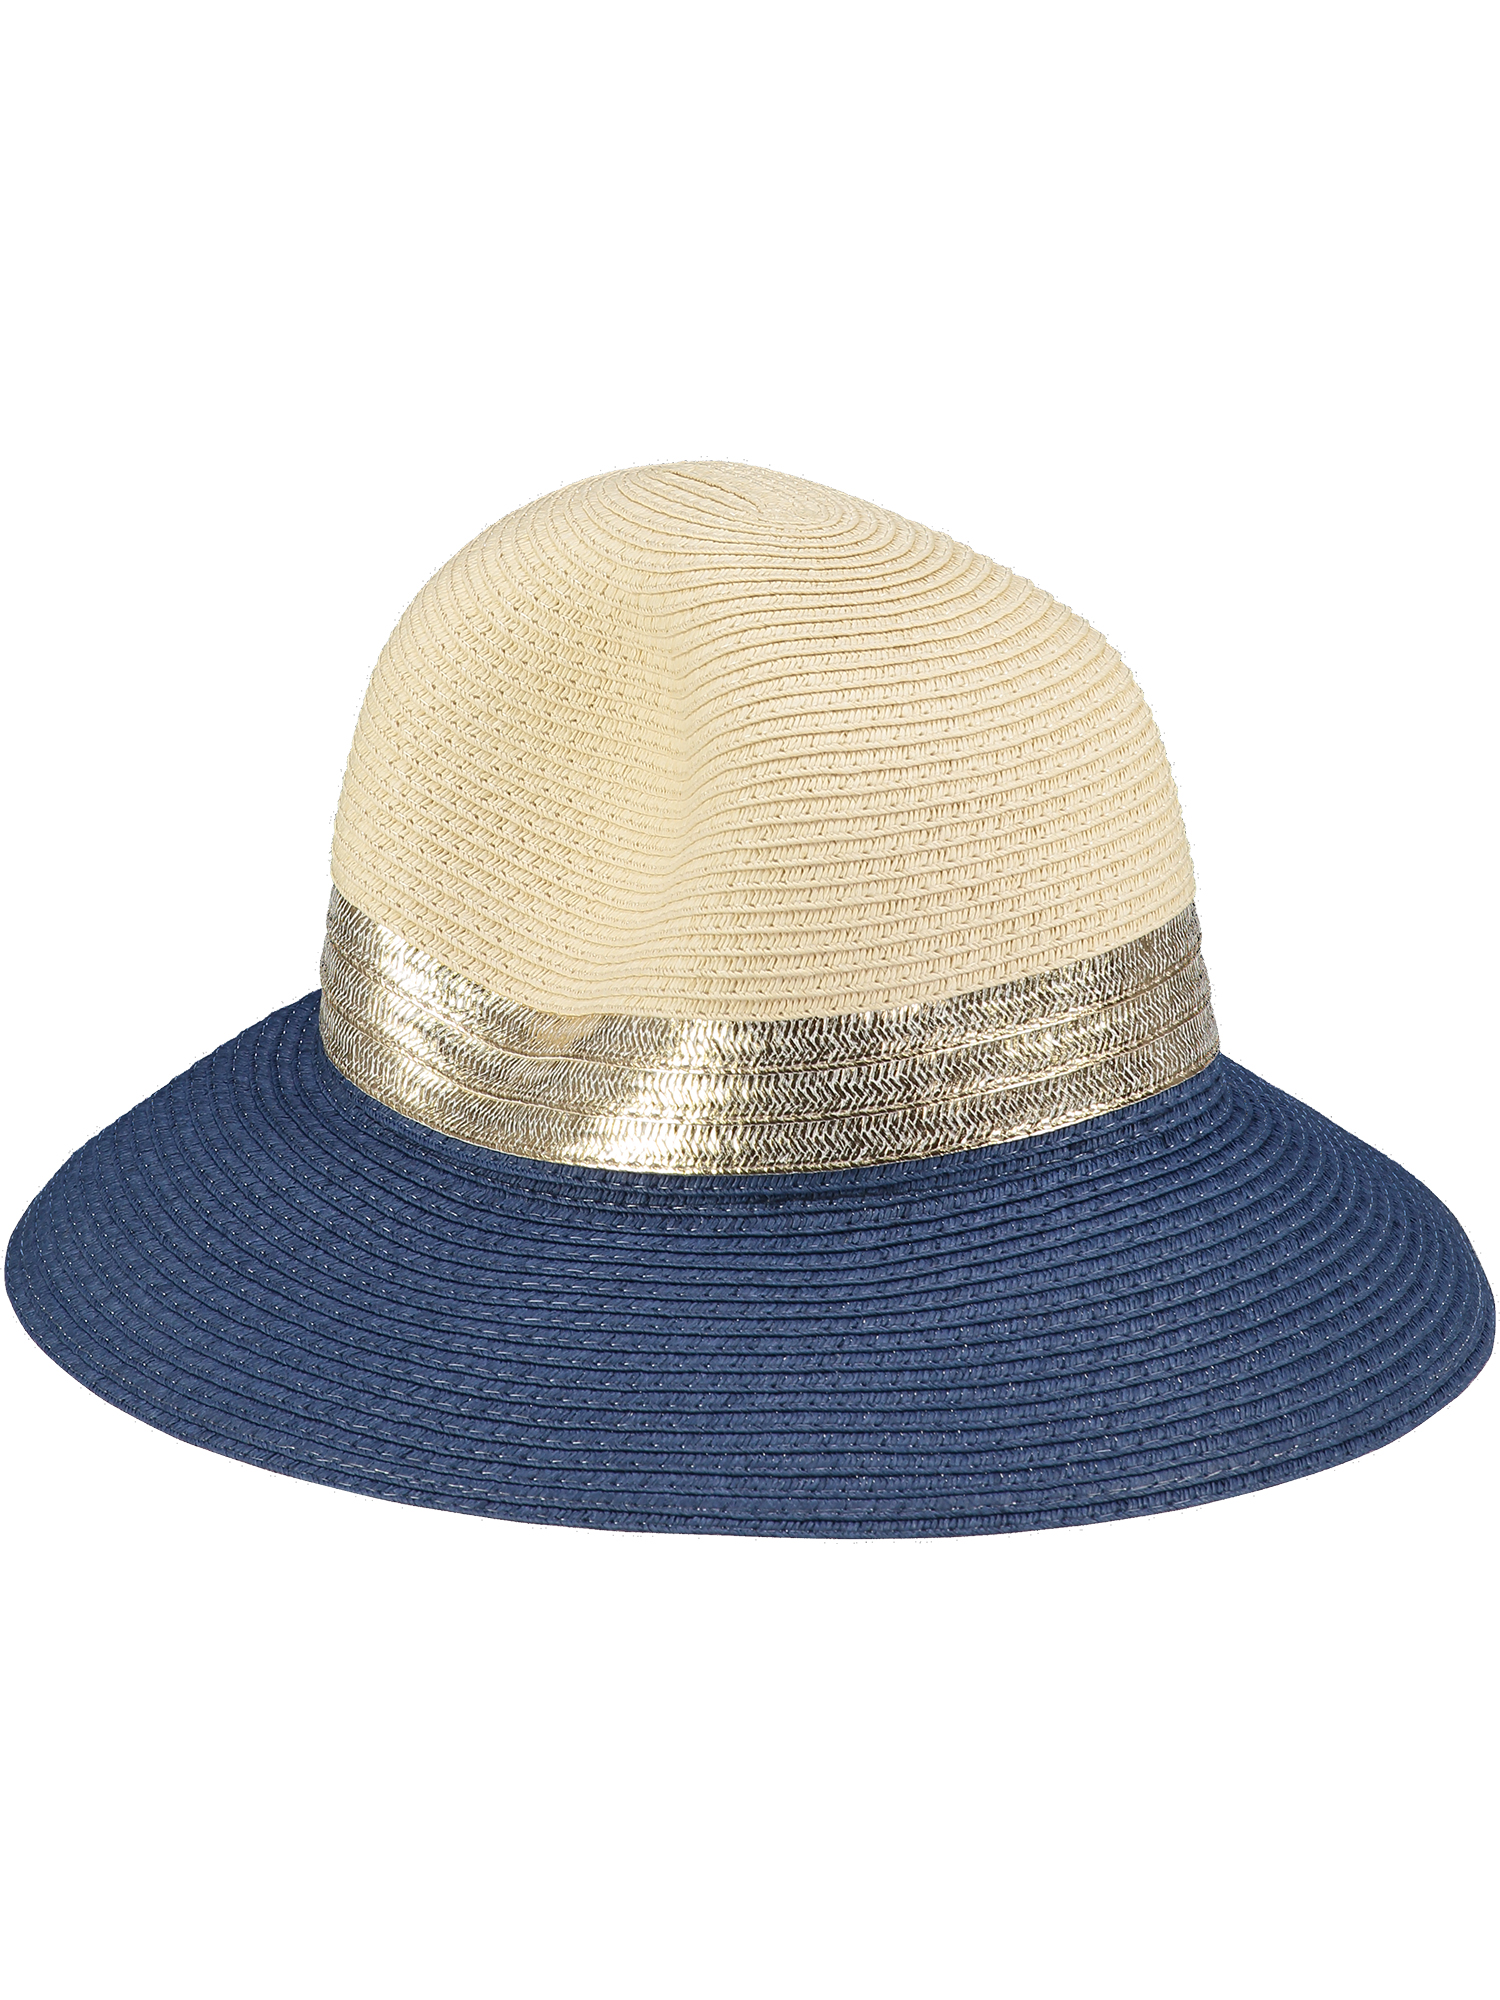 Natural Sun Hat Blue & Gold 1